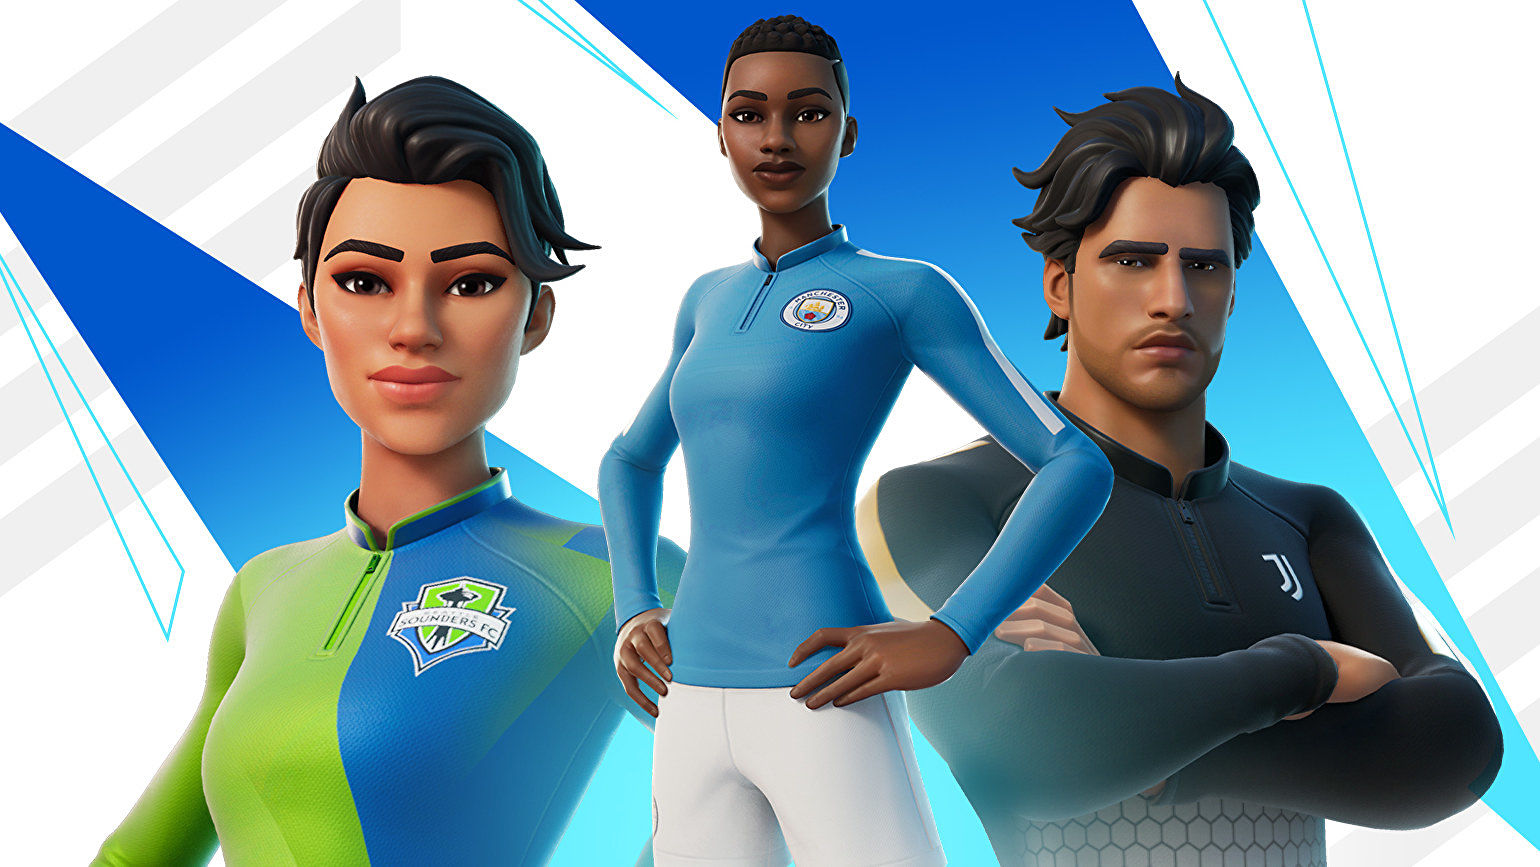 Fortnite is adding football kits, but not for my team so whatever who cares